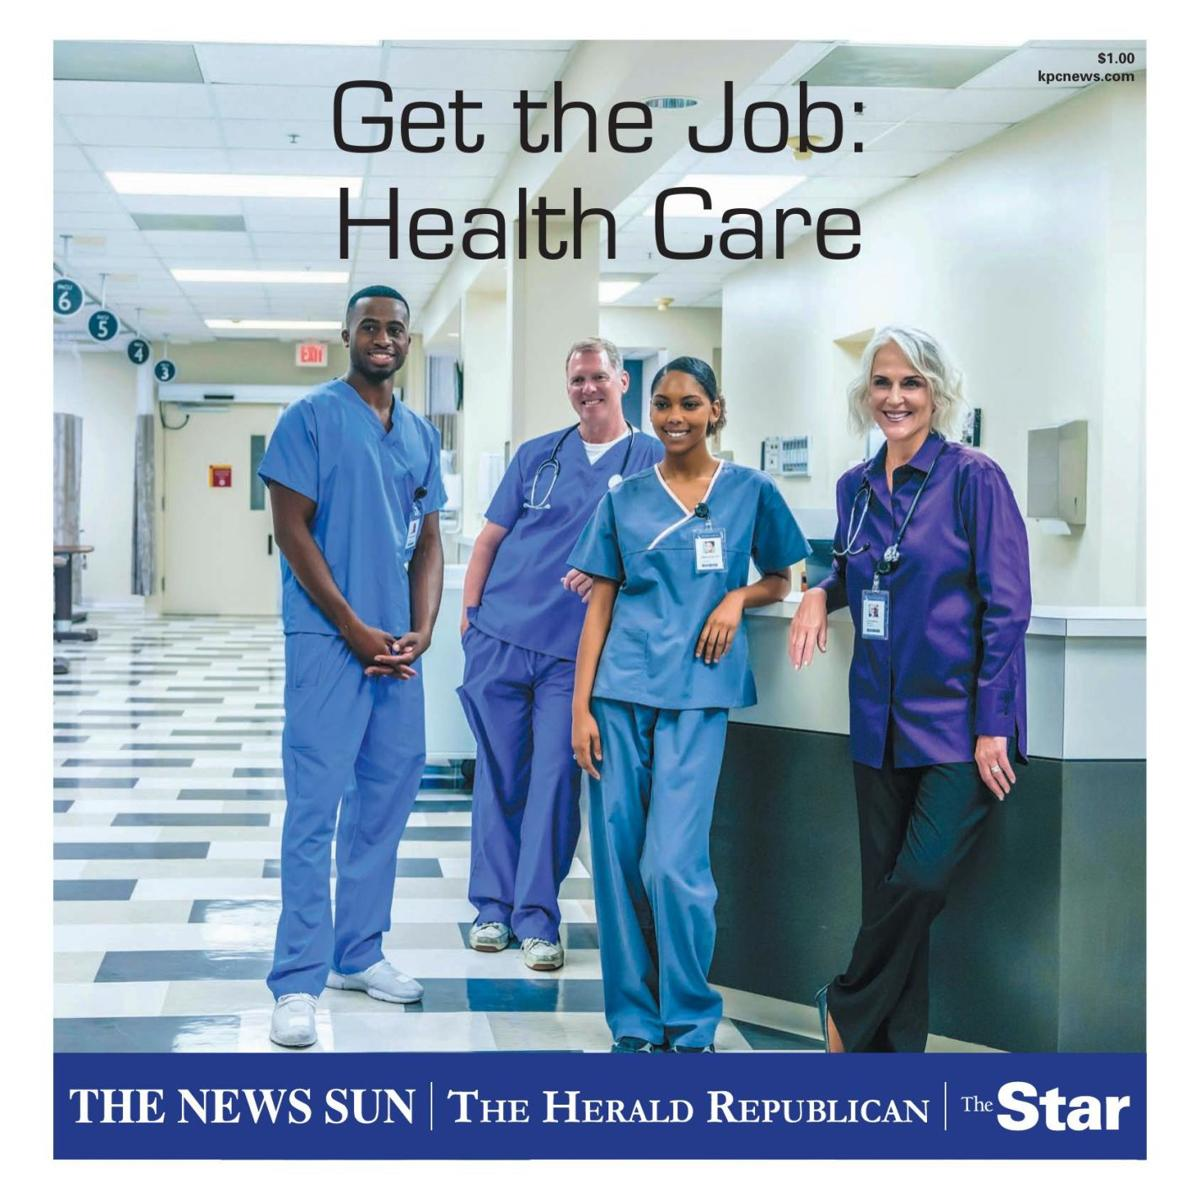 Get the Job: Health Care August 2019.